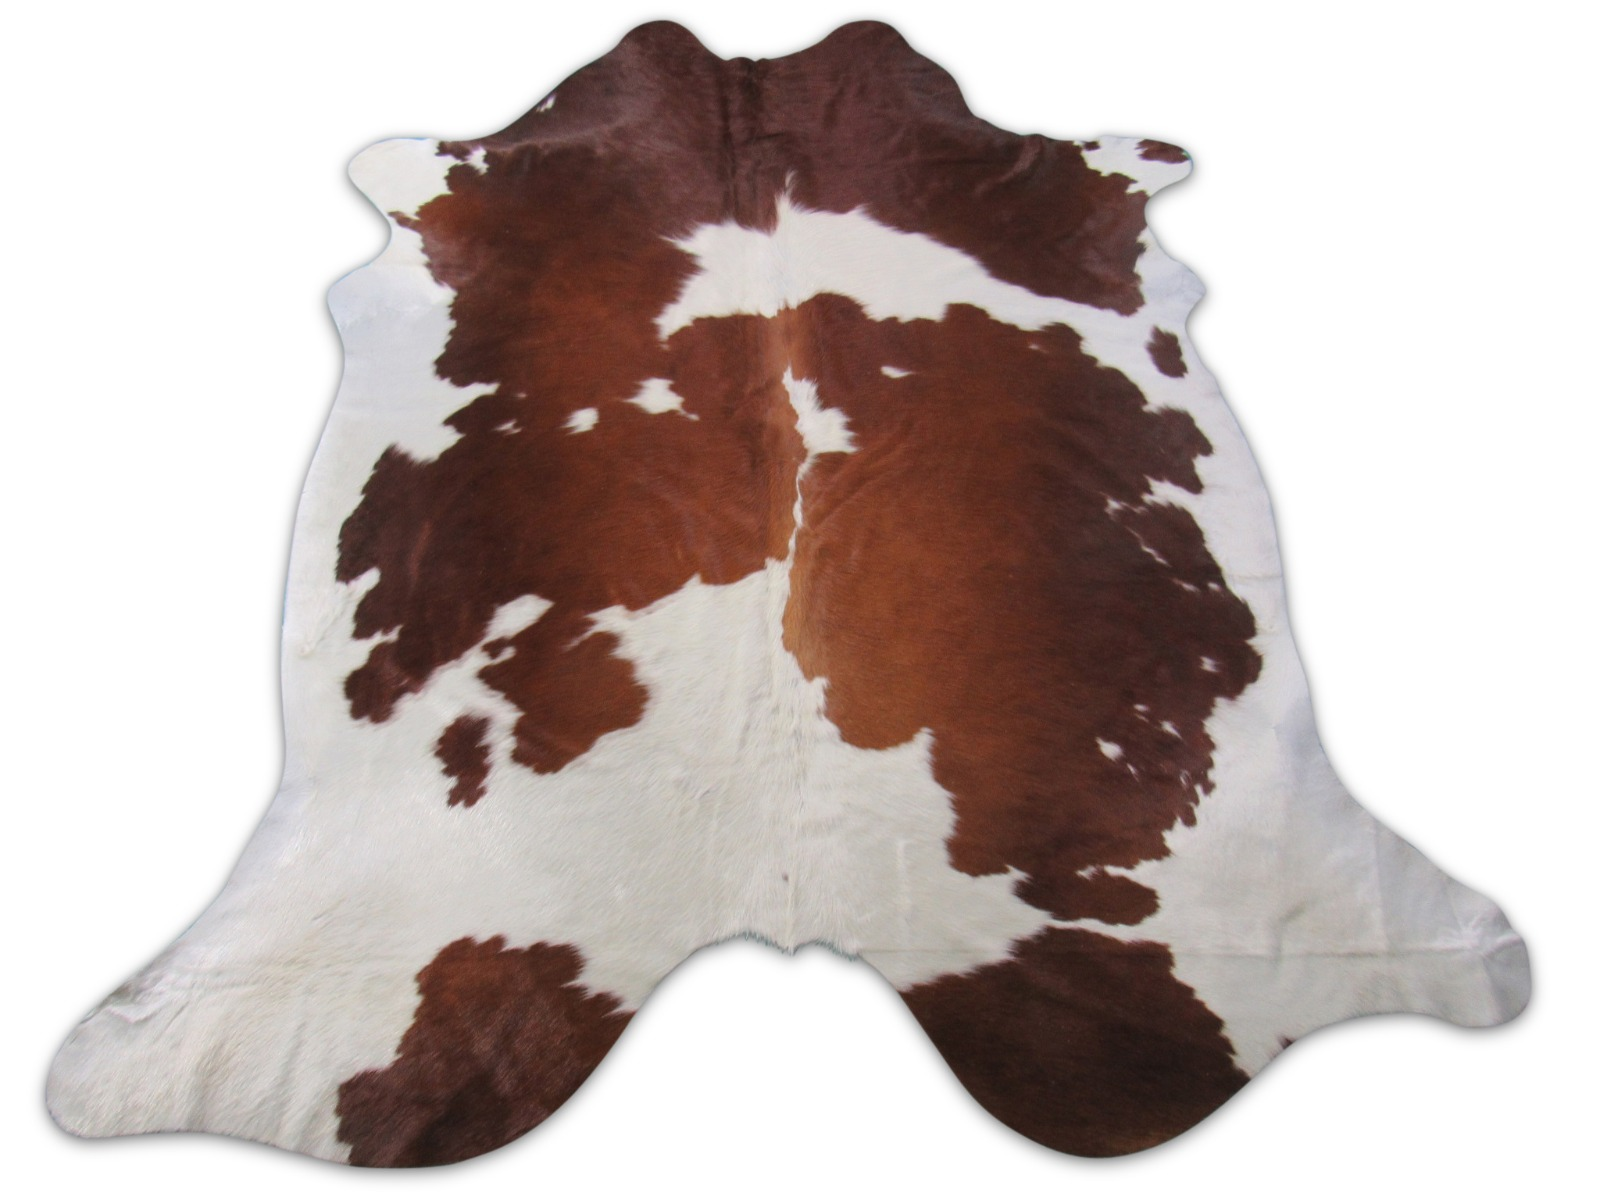 A-1467 Brown and White Spotted Cowhide Rug Size: 8' X 7'